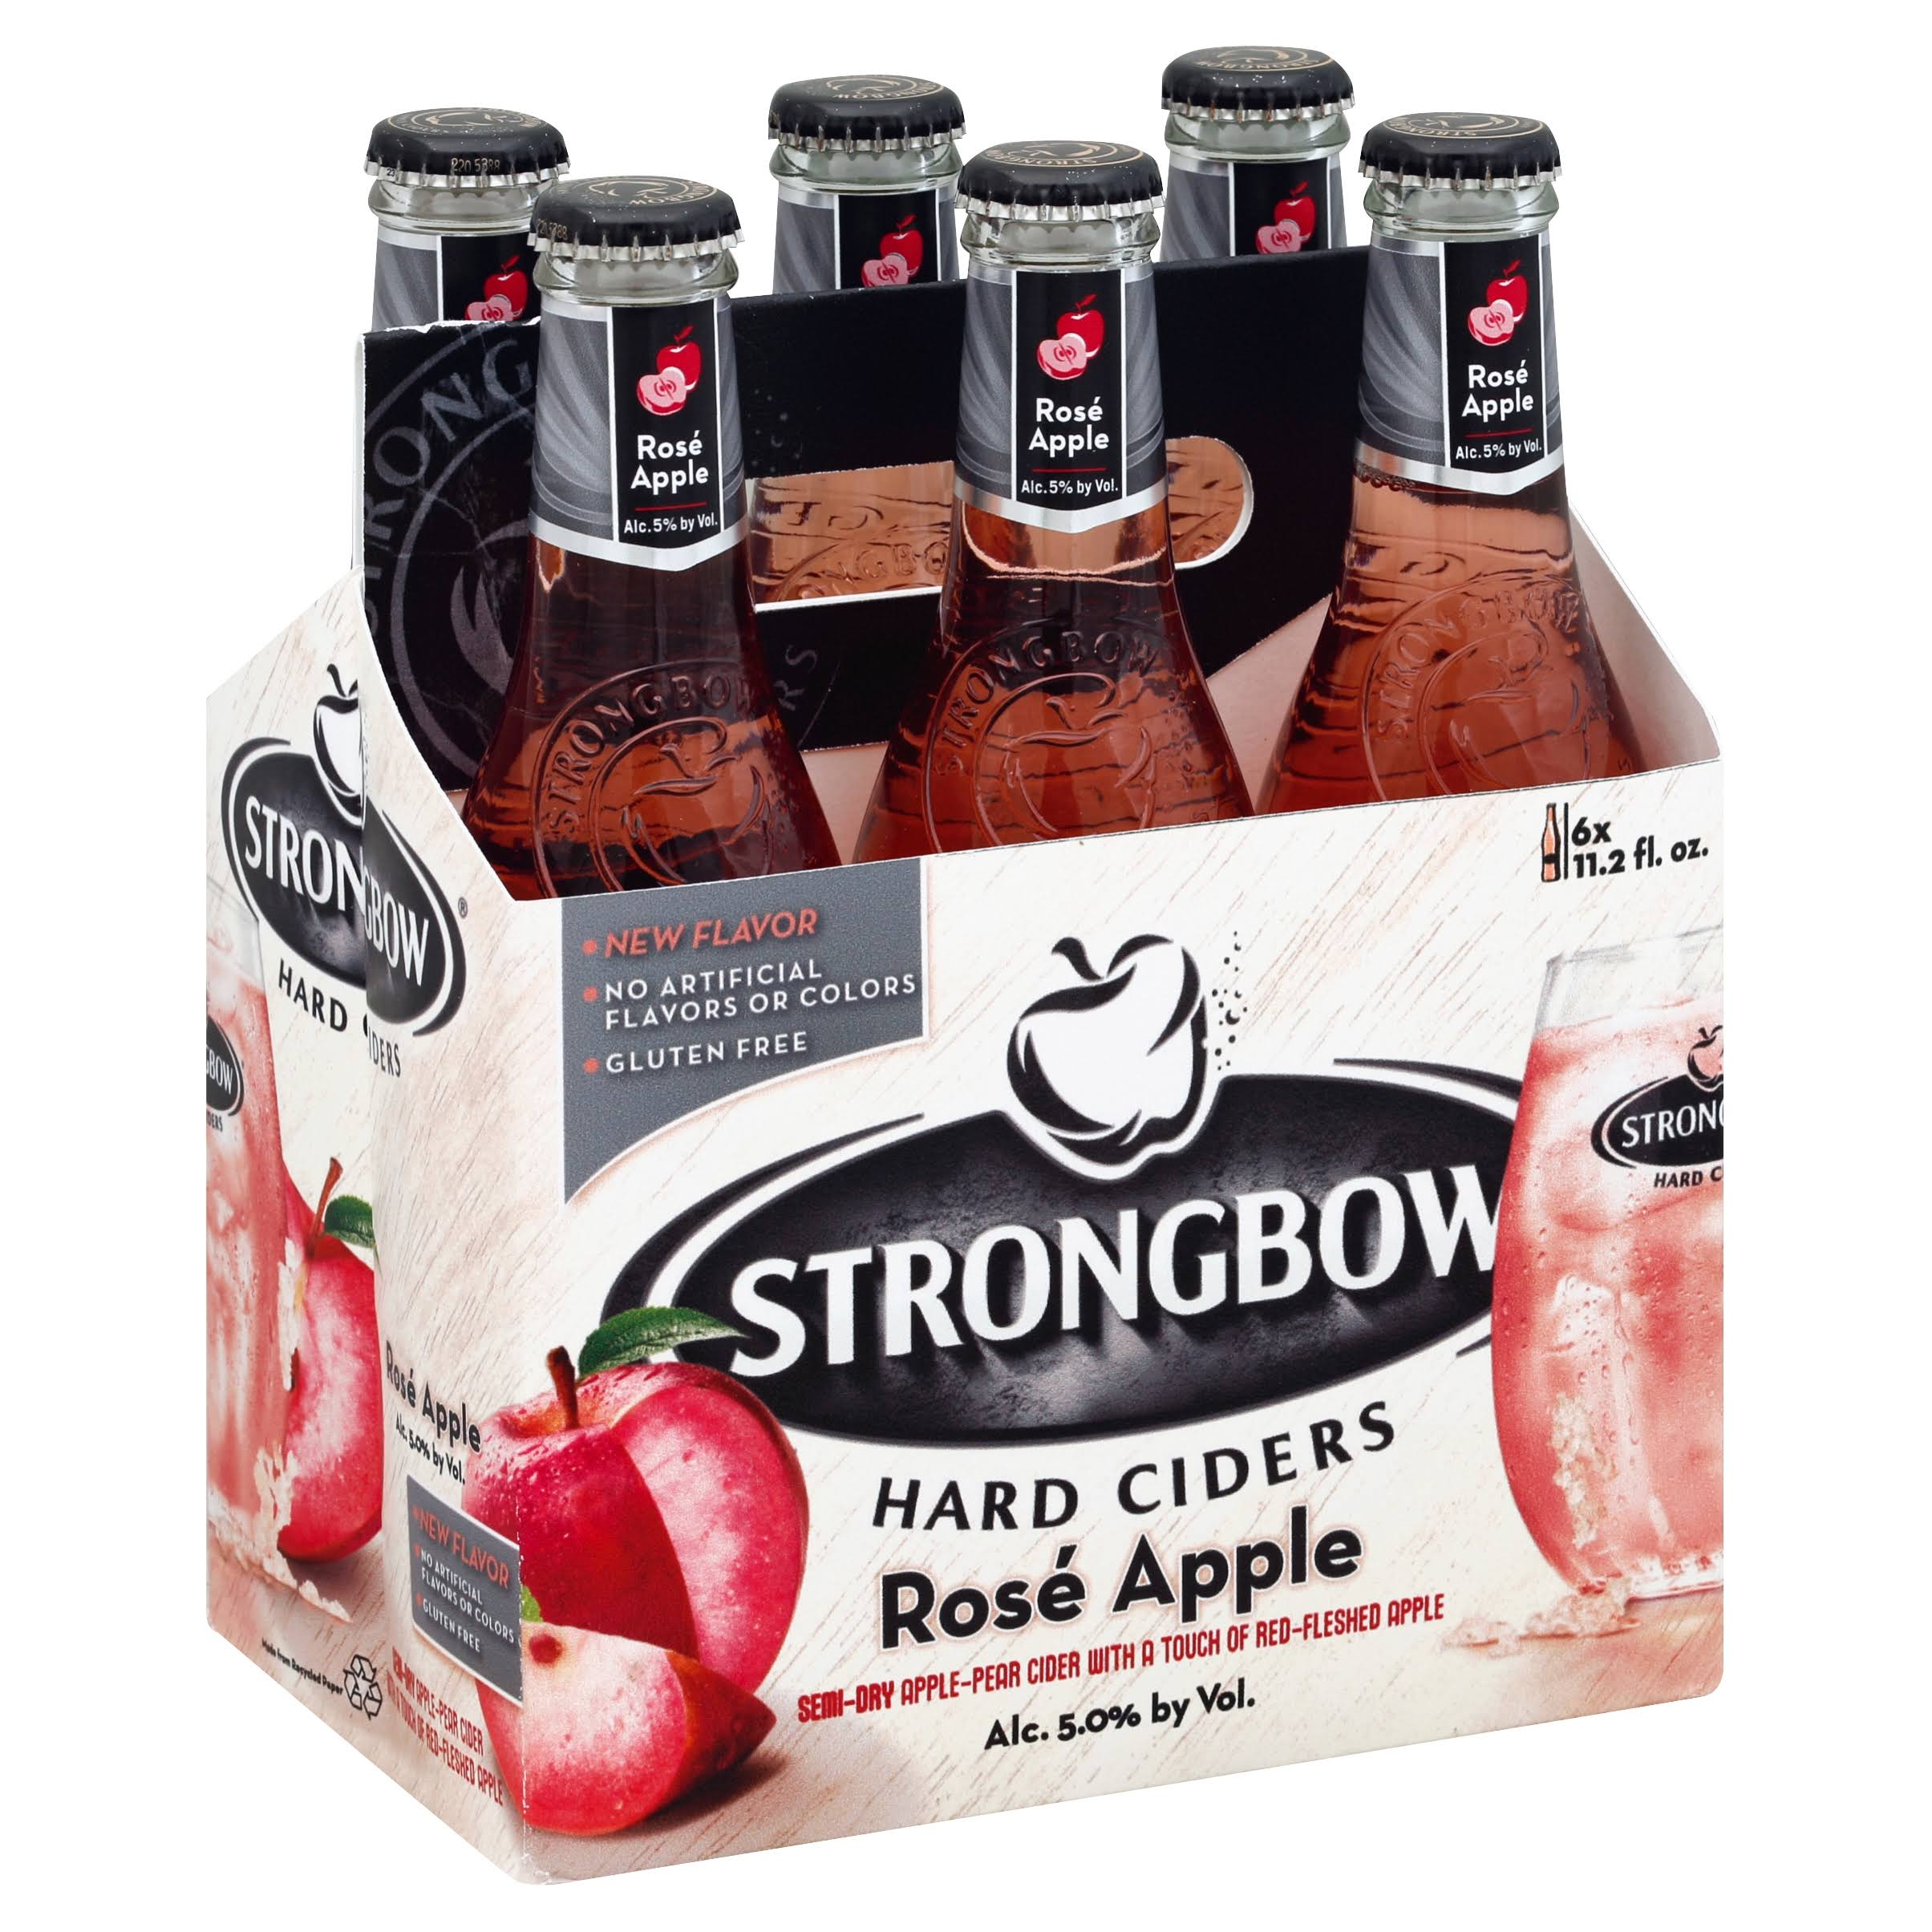 Strongbow Hard Ciders, Rose Apple - 6 pack, 11.2 fl oz bottles